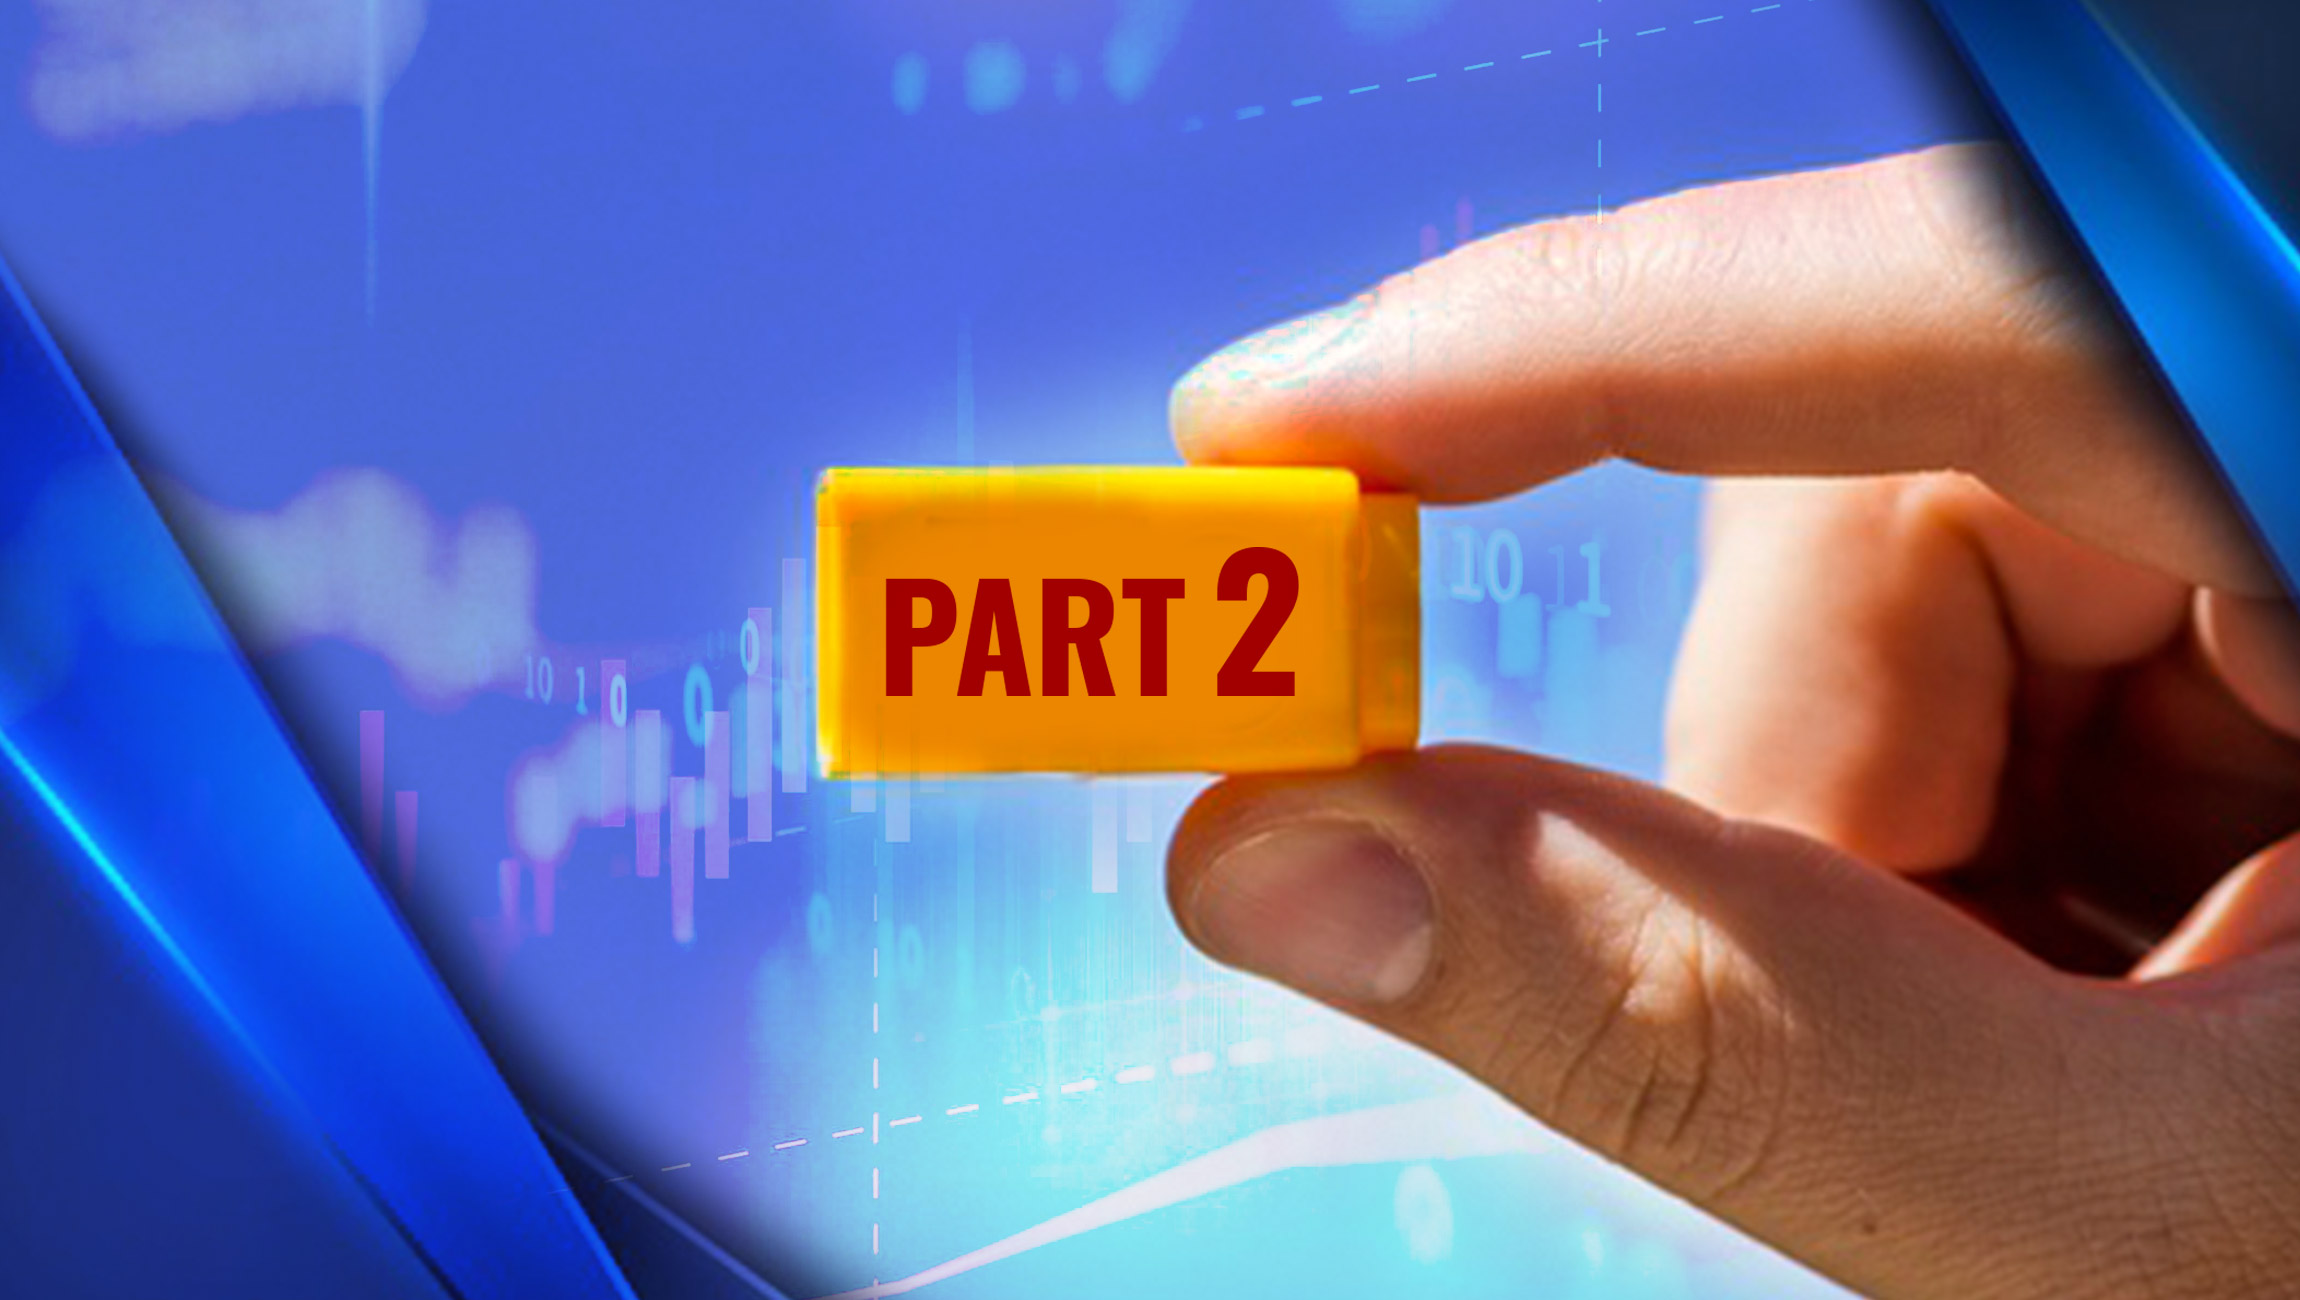 Taking the Sales Approach to Marketing Part 2